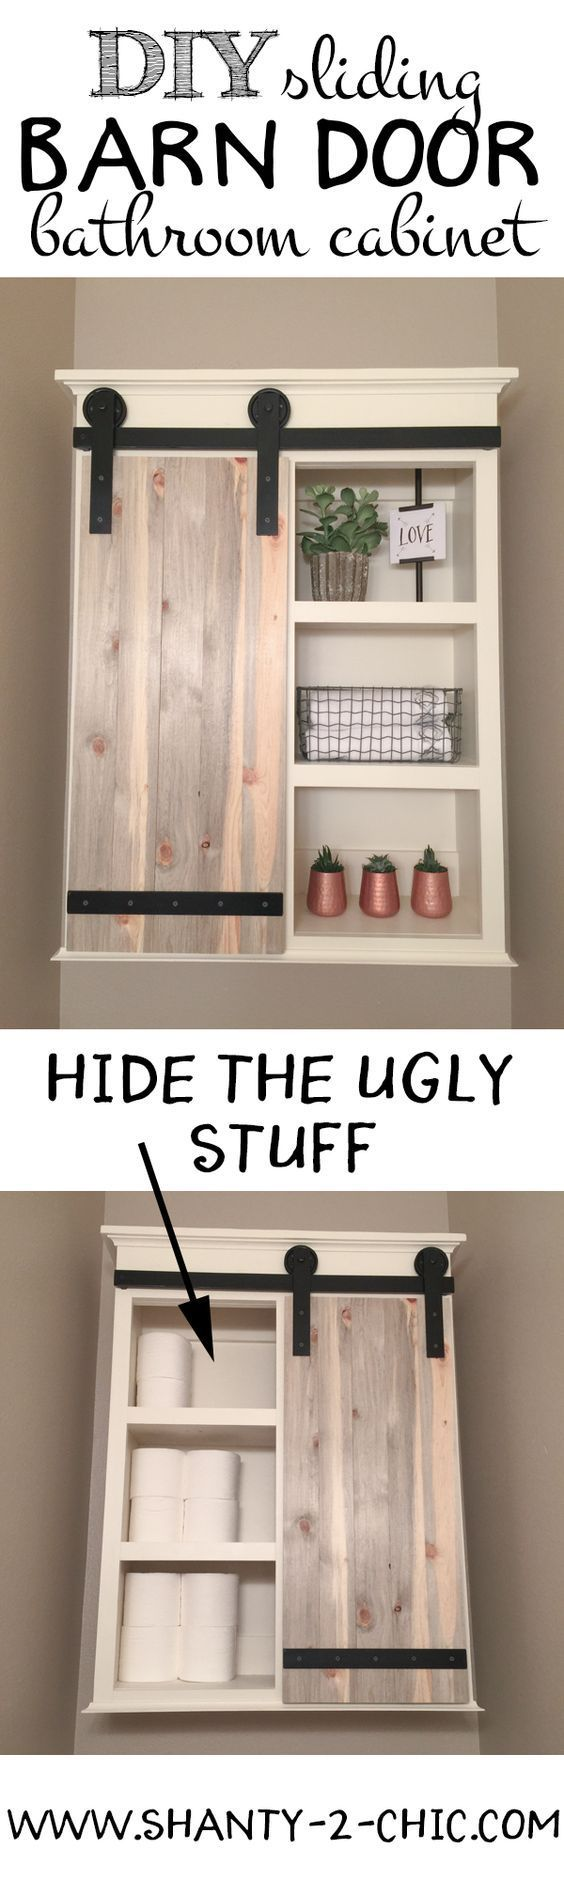 Build a custom Sliding Barn Door Storage Cabinet! Perfect for storage toilet paper and other items you don't want to be seen but also open shelving for decorating! Free plans at www.shanty-2-chic.com.